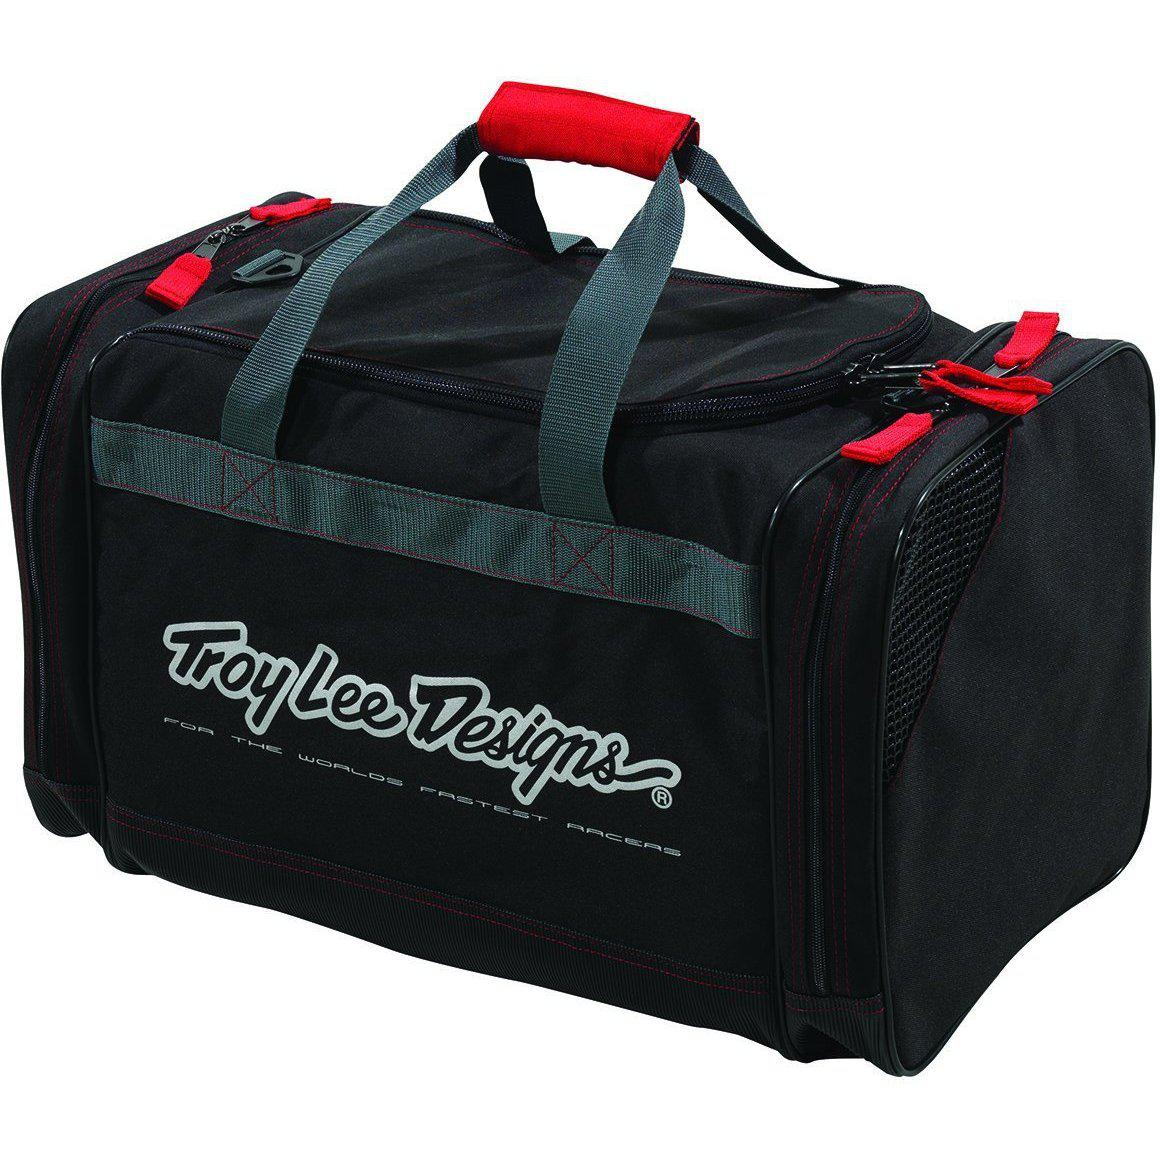 Troy Lee Designs-Troy Lee Designs Jet Bag-BLACK-Uni-TLD604003200-saddleback-elite-performance-cycling